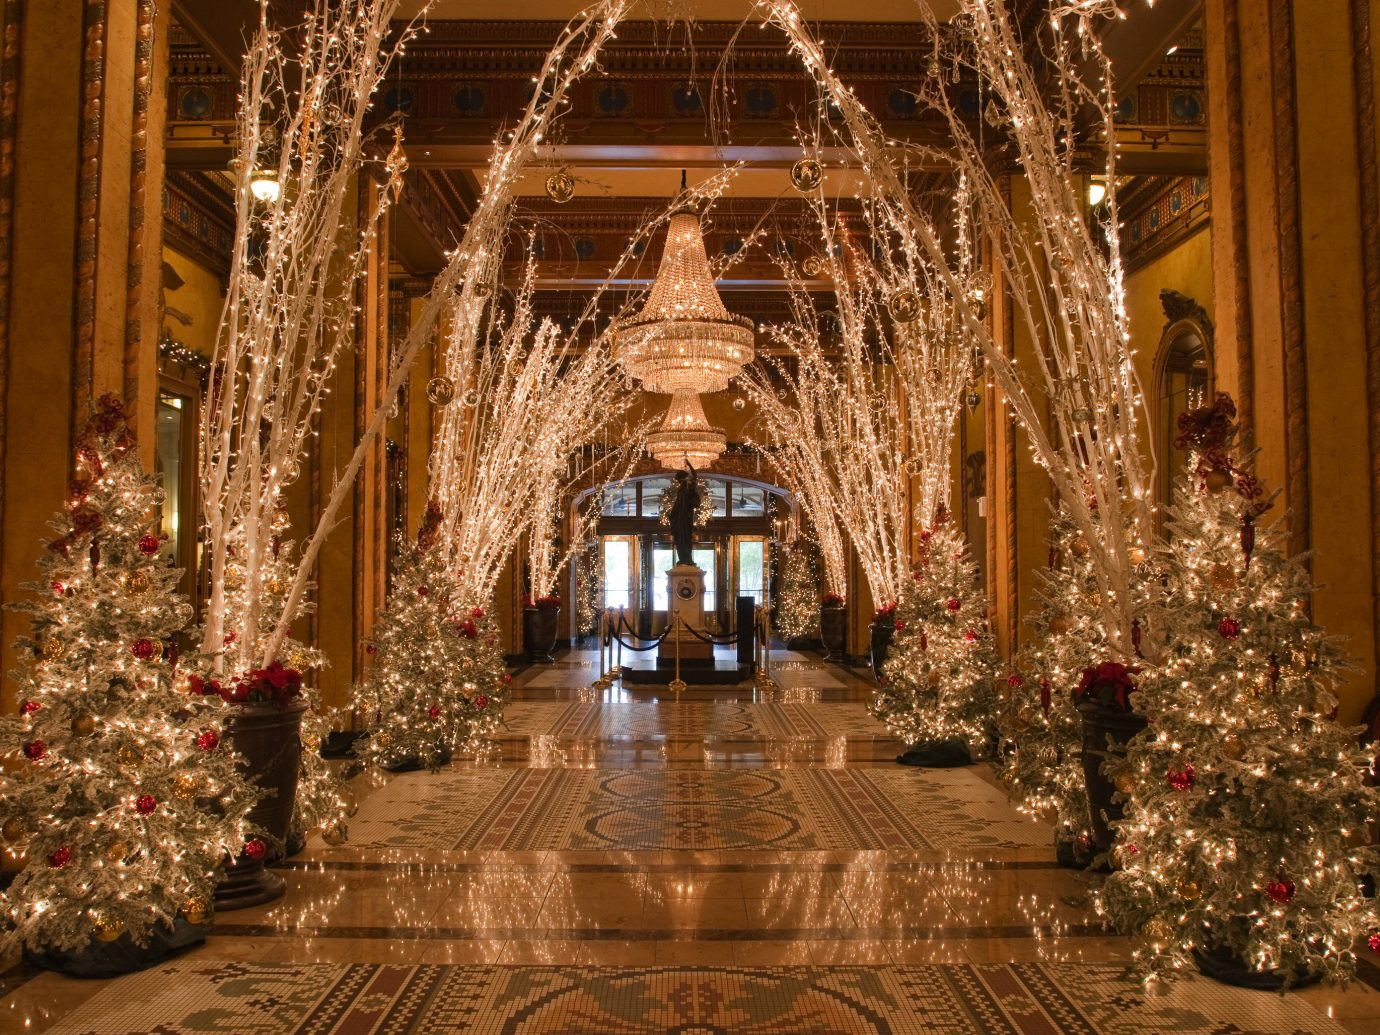 Hotels indoor christmas decoration Christmas Christmas tree aisle lighting christmas lights altar meal ballroom decorated